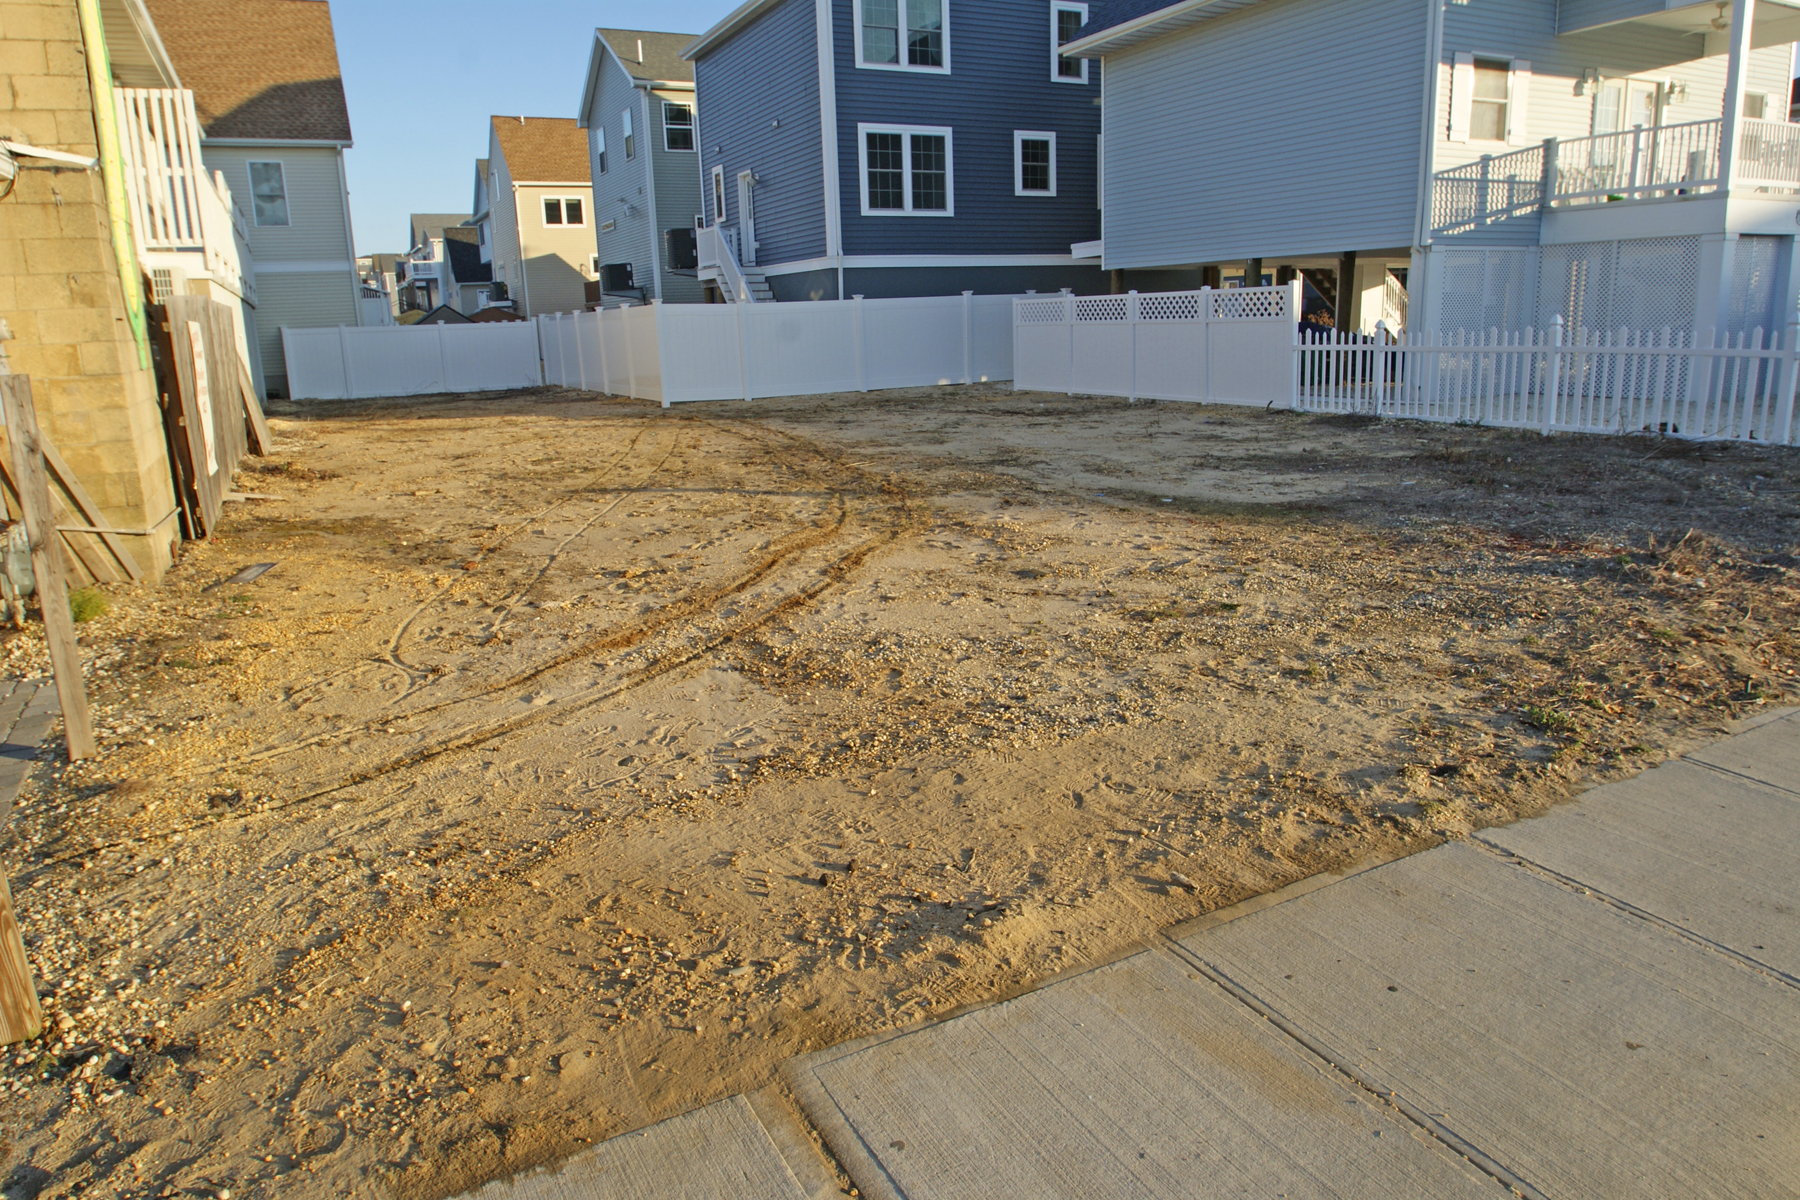 Land for Active at Oversized Lot On The Oceanside 1756 Route 35 North Ortley Beach, New Jersey 08751 United States